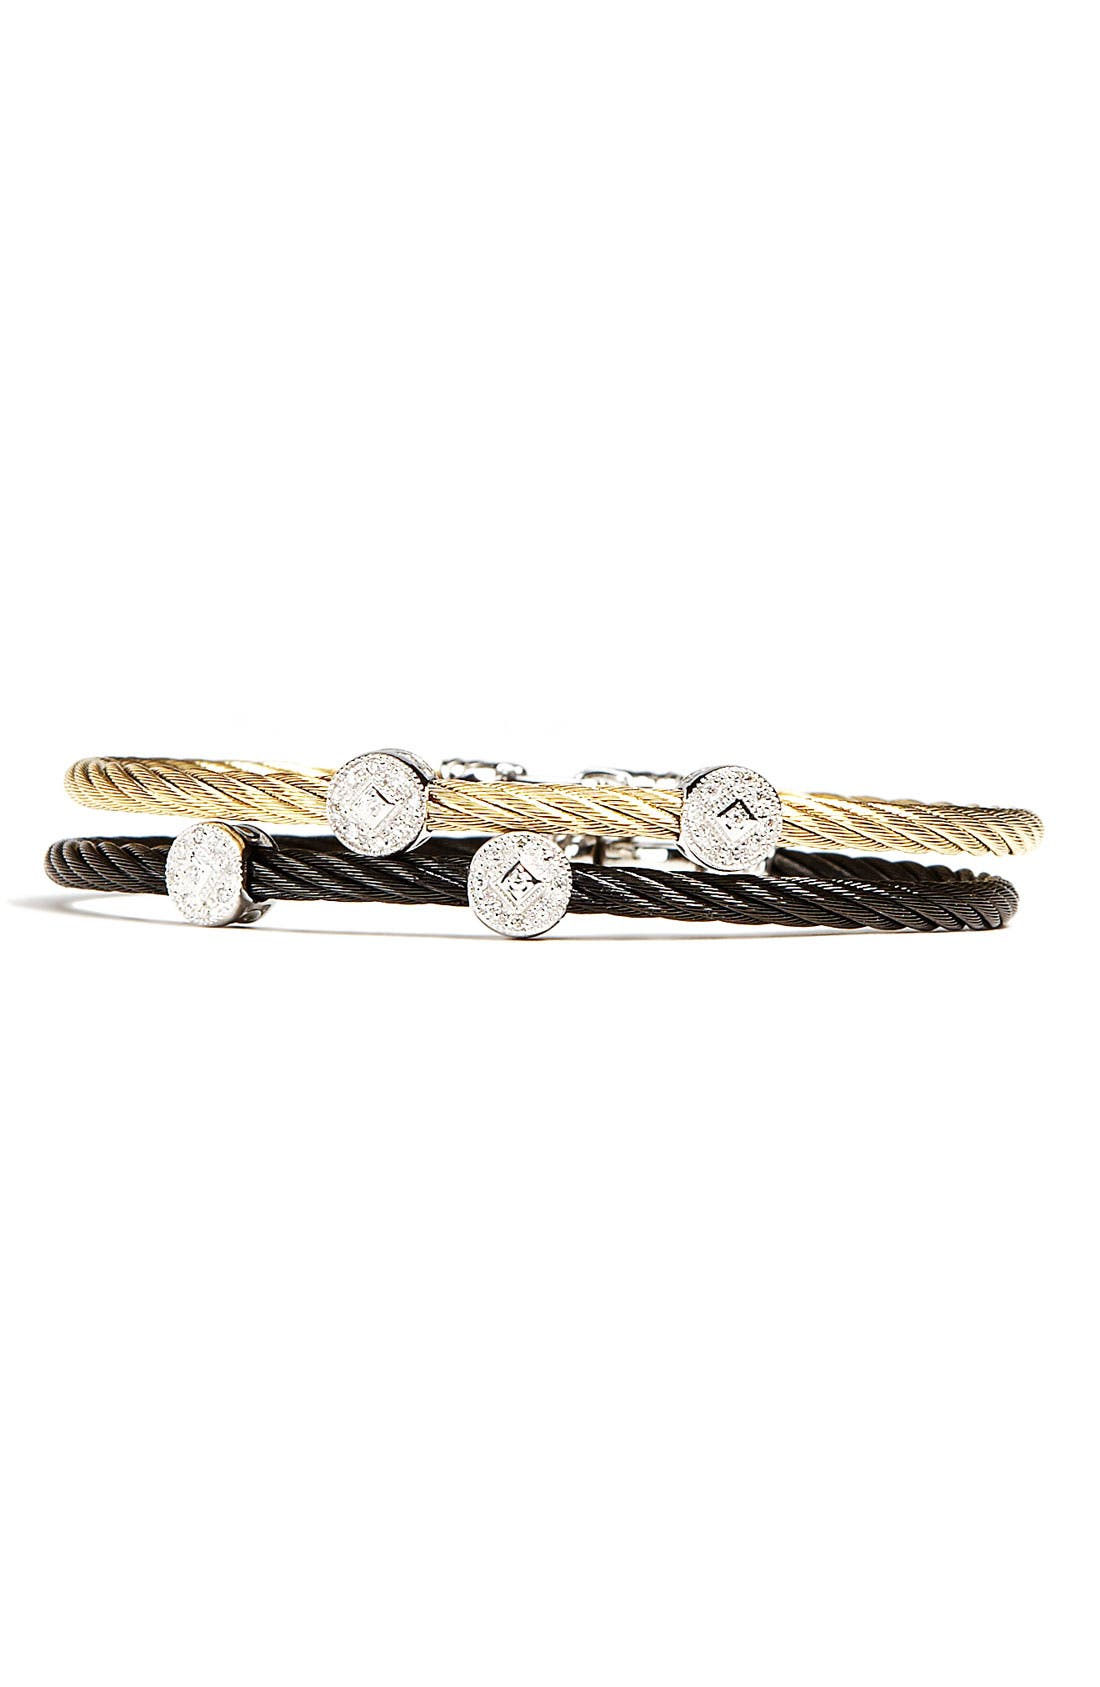 Alternate Image 1 Selected - ALOR® Round Diamond Station Stackable Bracelet